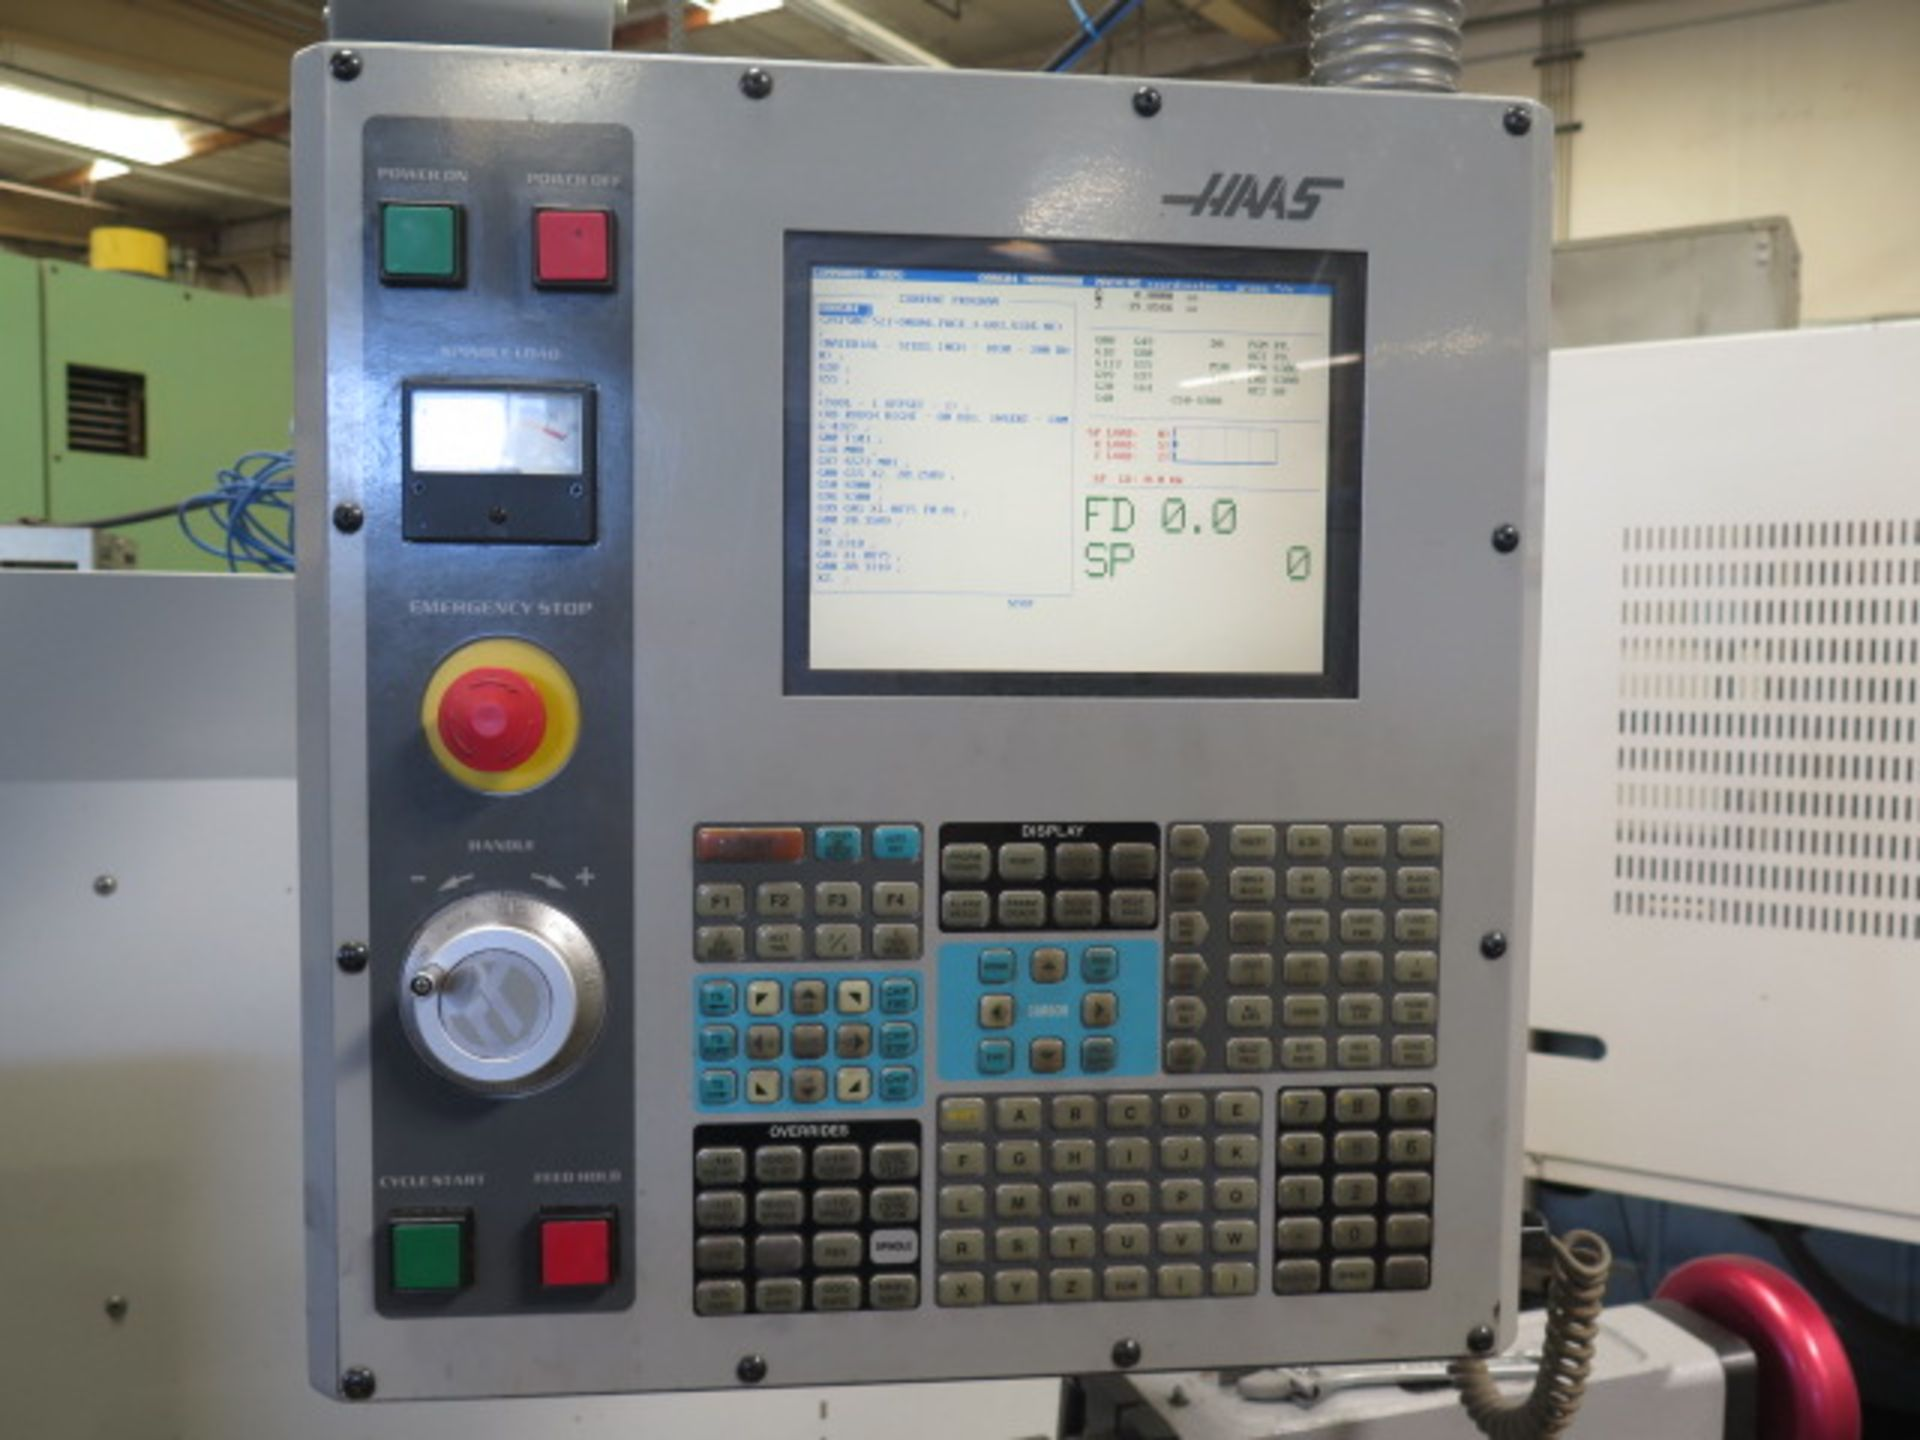 2004 Haas TL2 CNC Tool Room Lathe s/n 68351 w/ Haas Controls, Tailstock, Steady Rest, SOLD AS IS - Image 5 of 15